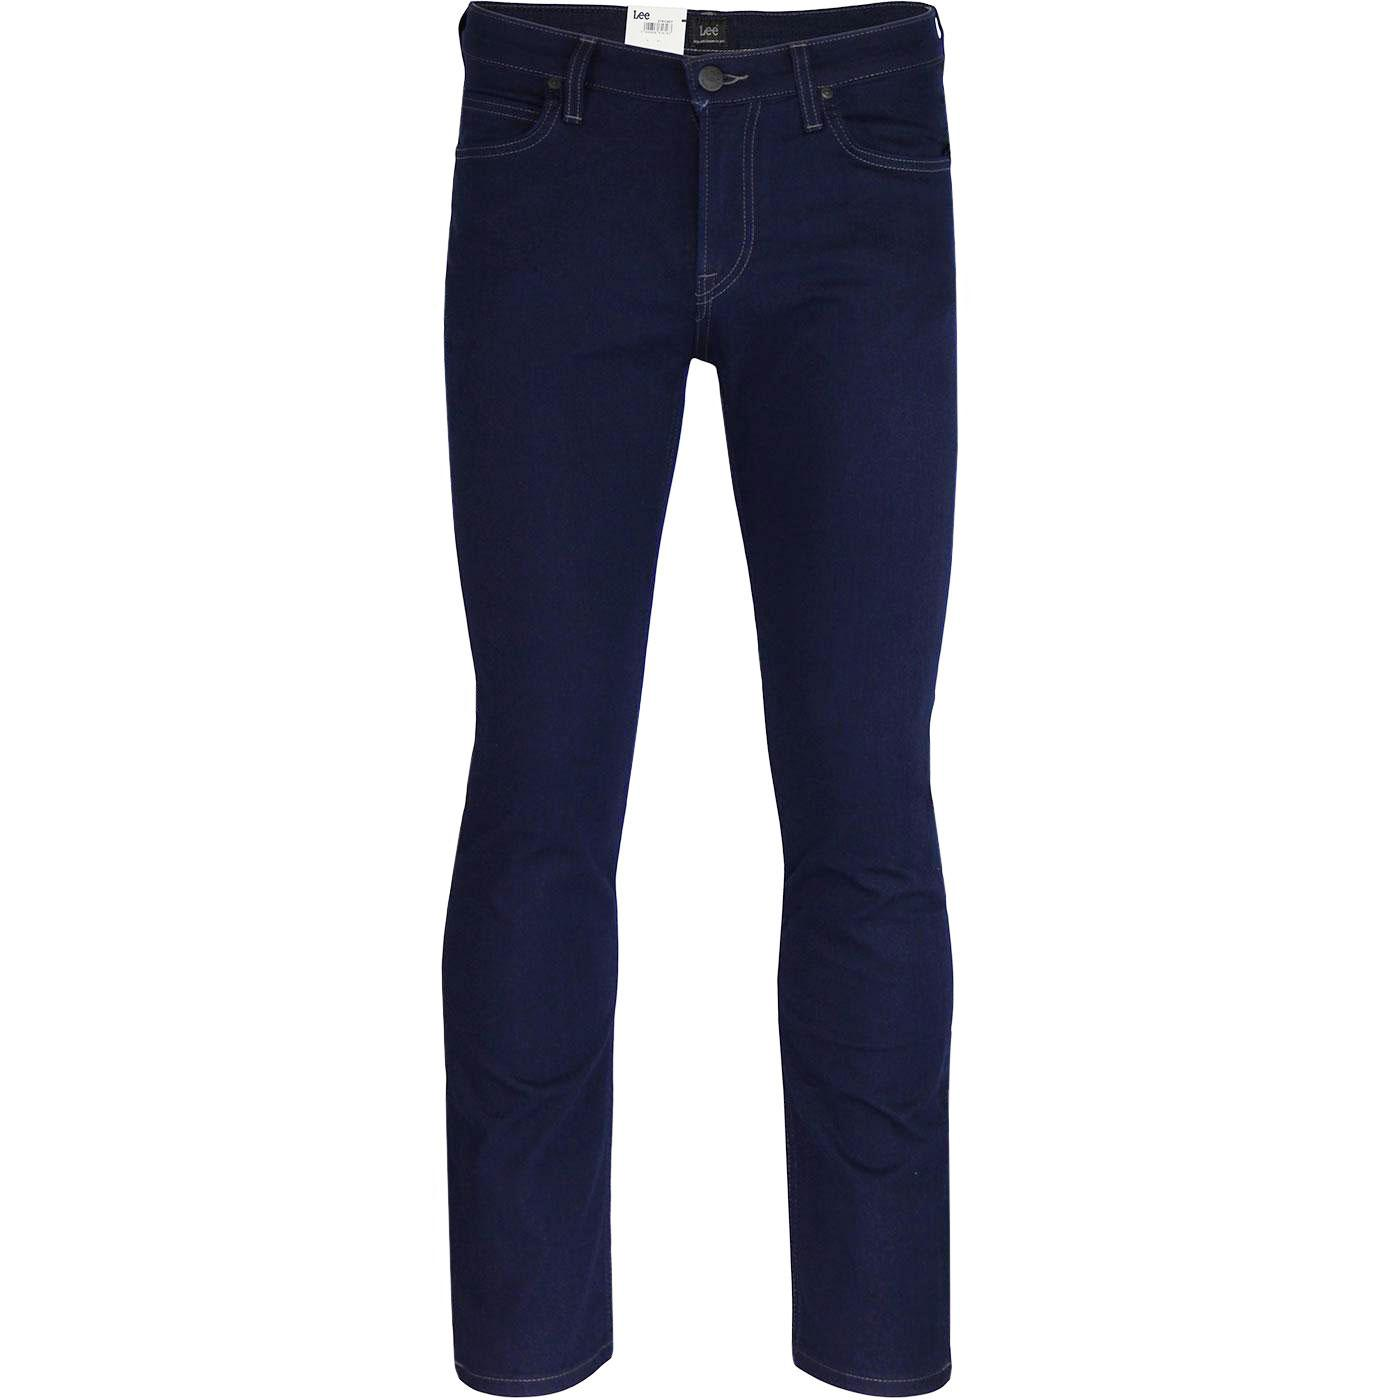 Rider LEE Slim Leg Retro Denim Jeans - Snap Blue